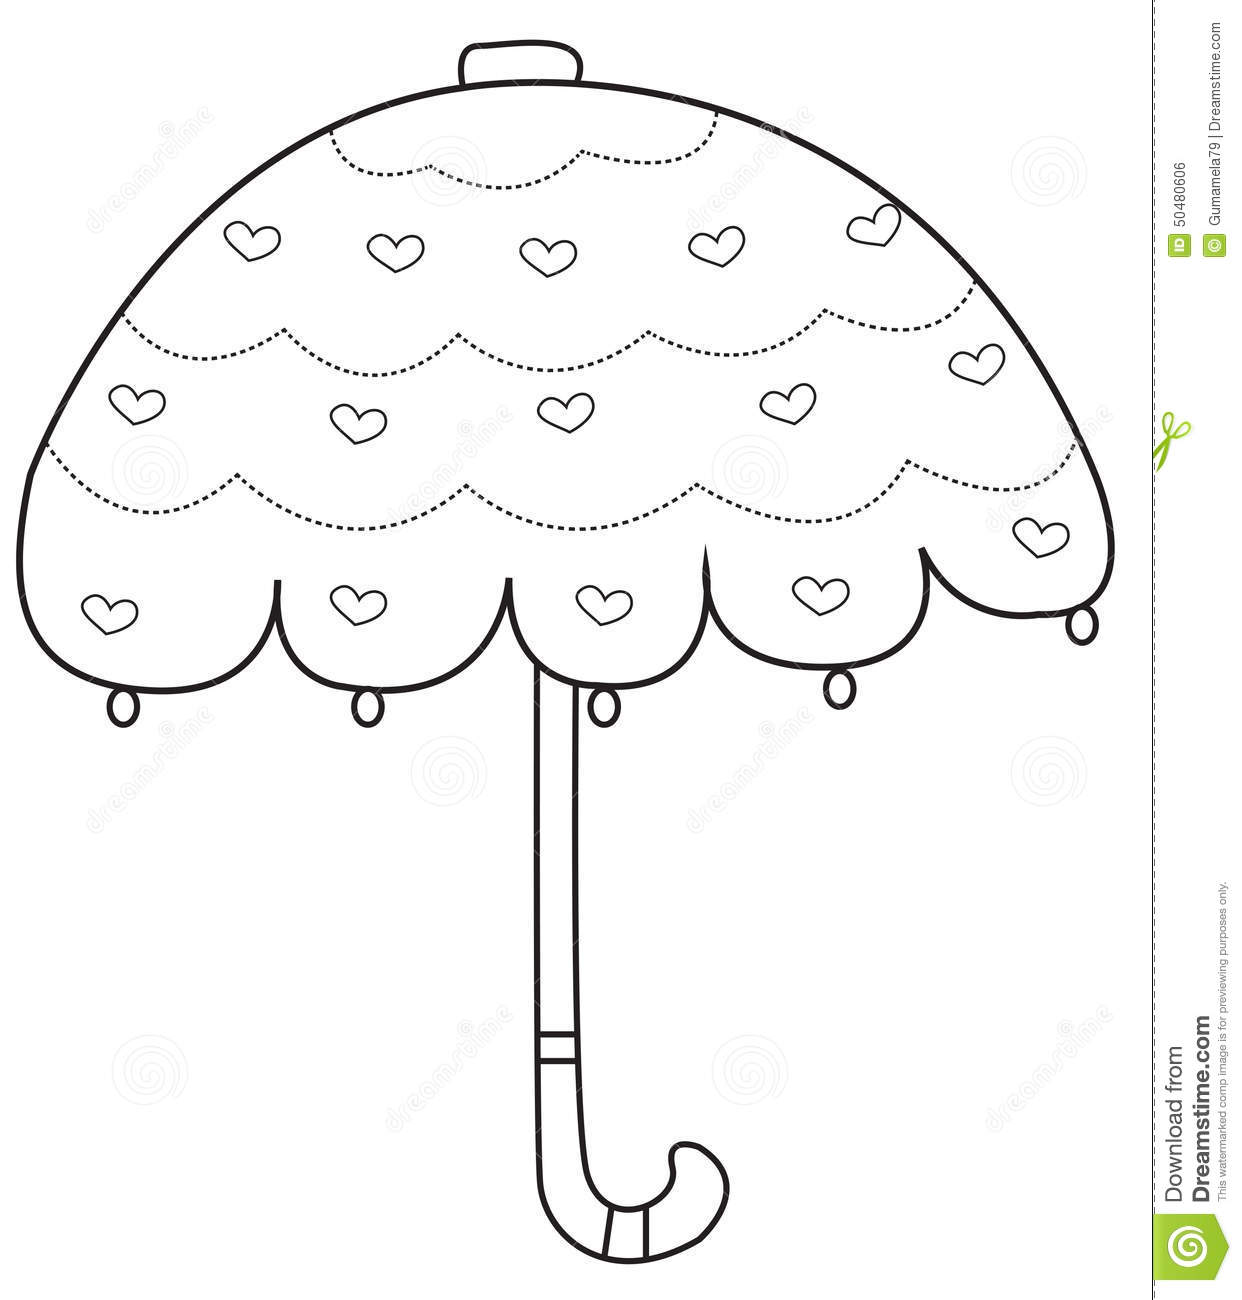 Umbrella Coloring Page Stock Illustration Illustration Of